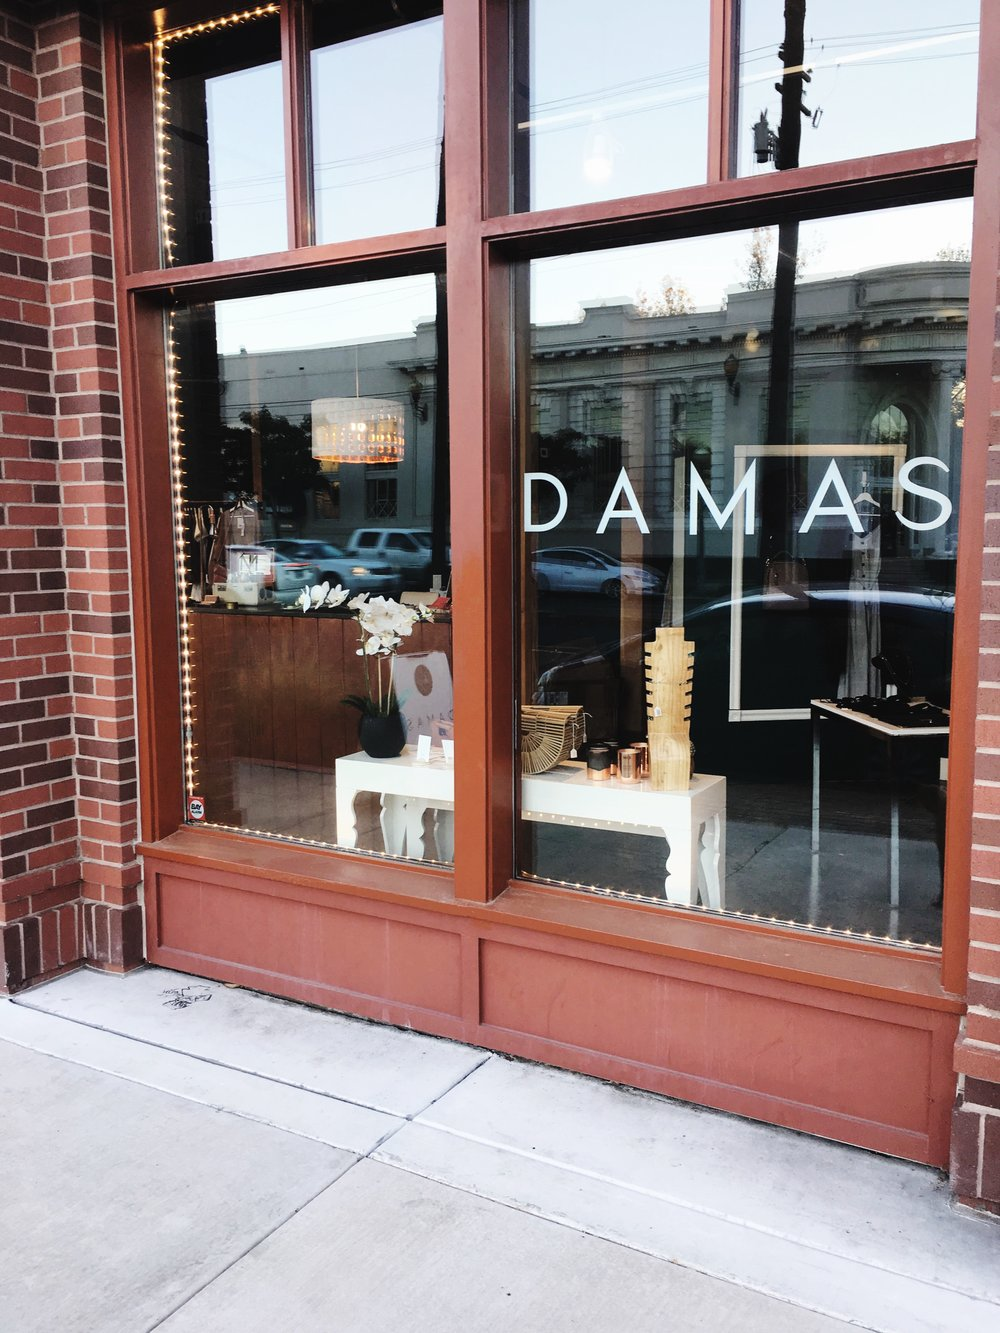 Oak Park California DAMAS Small Shop Bando Water Bottles